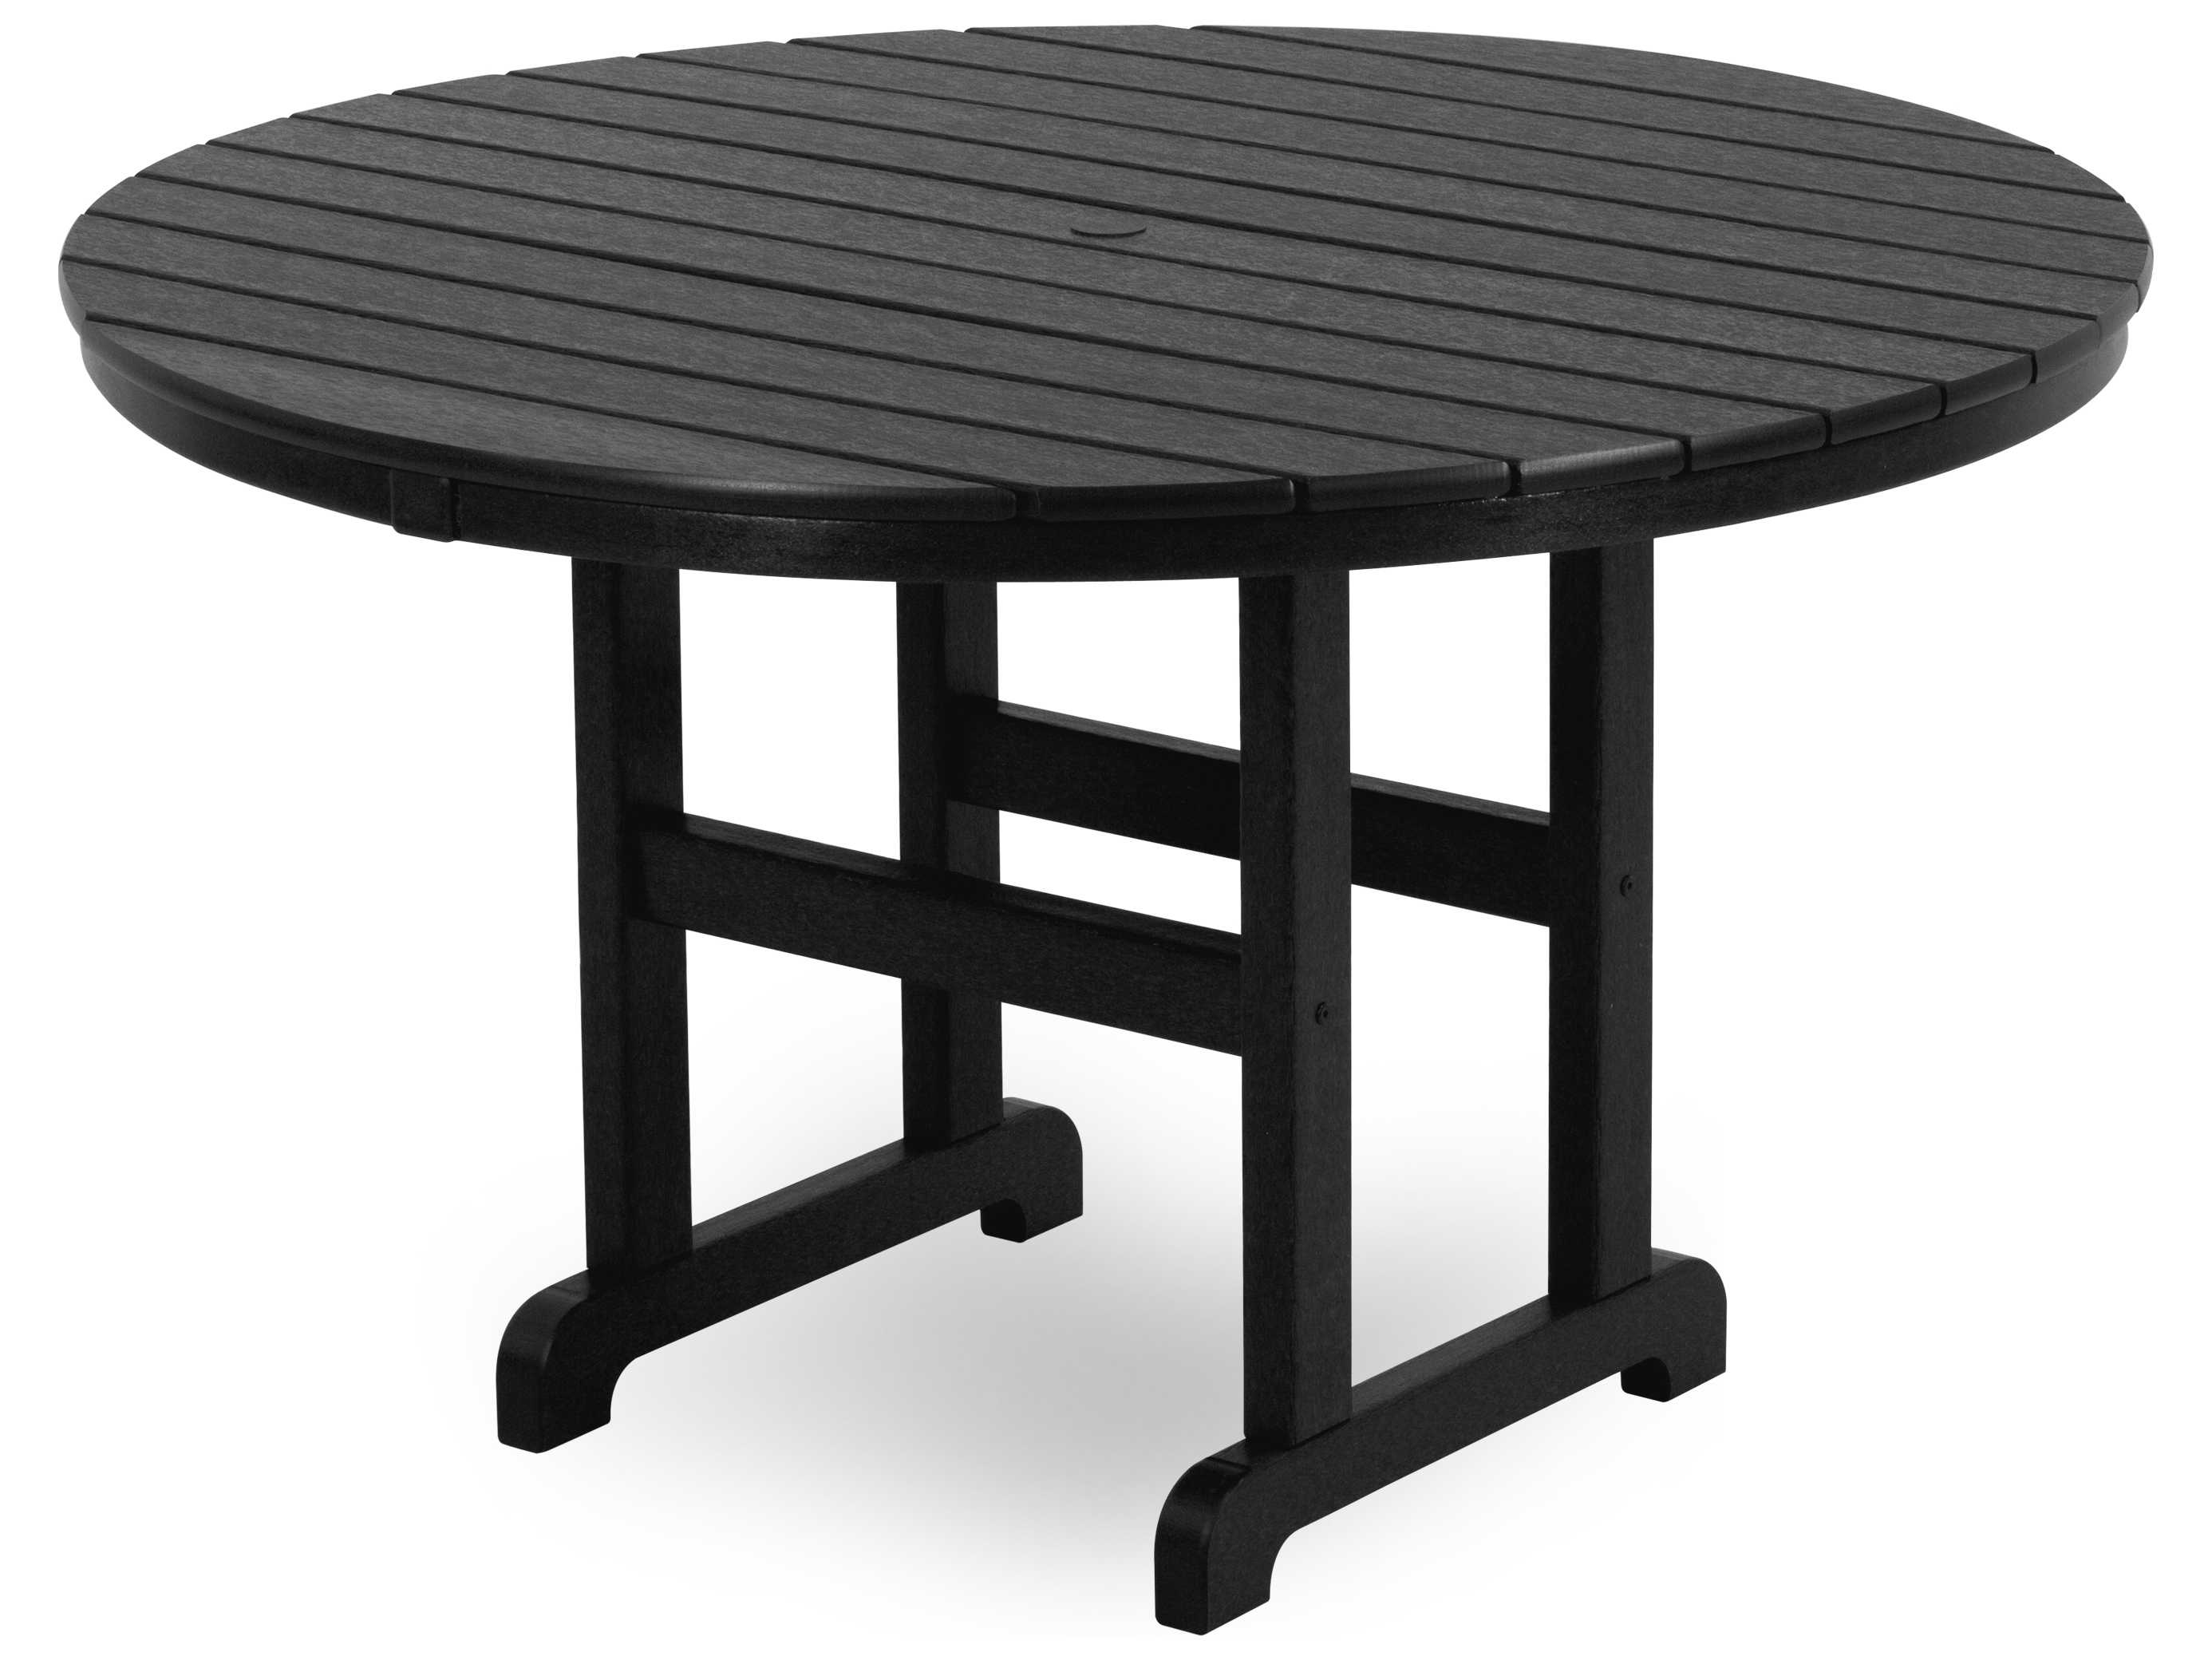 Polywood La Casa Cafe Recycled Plastic 48 Round Dining